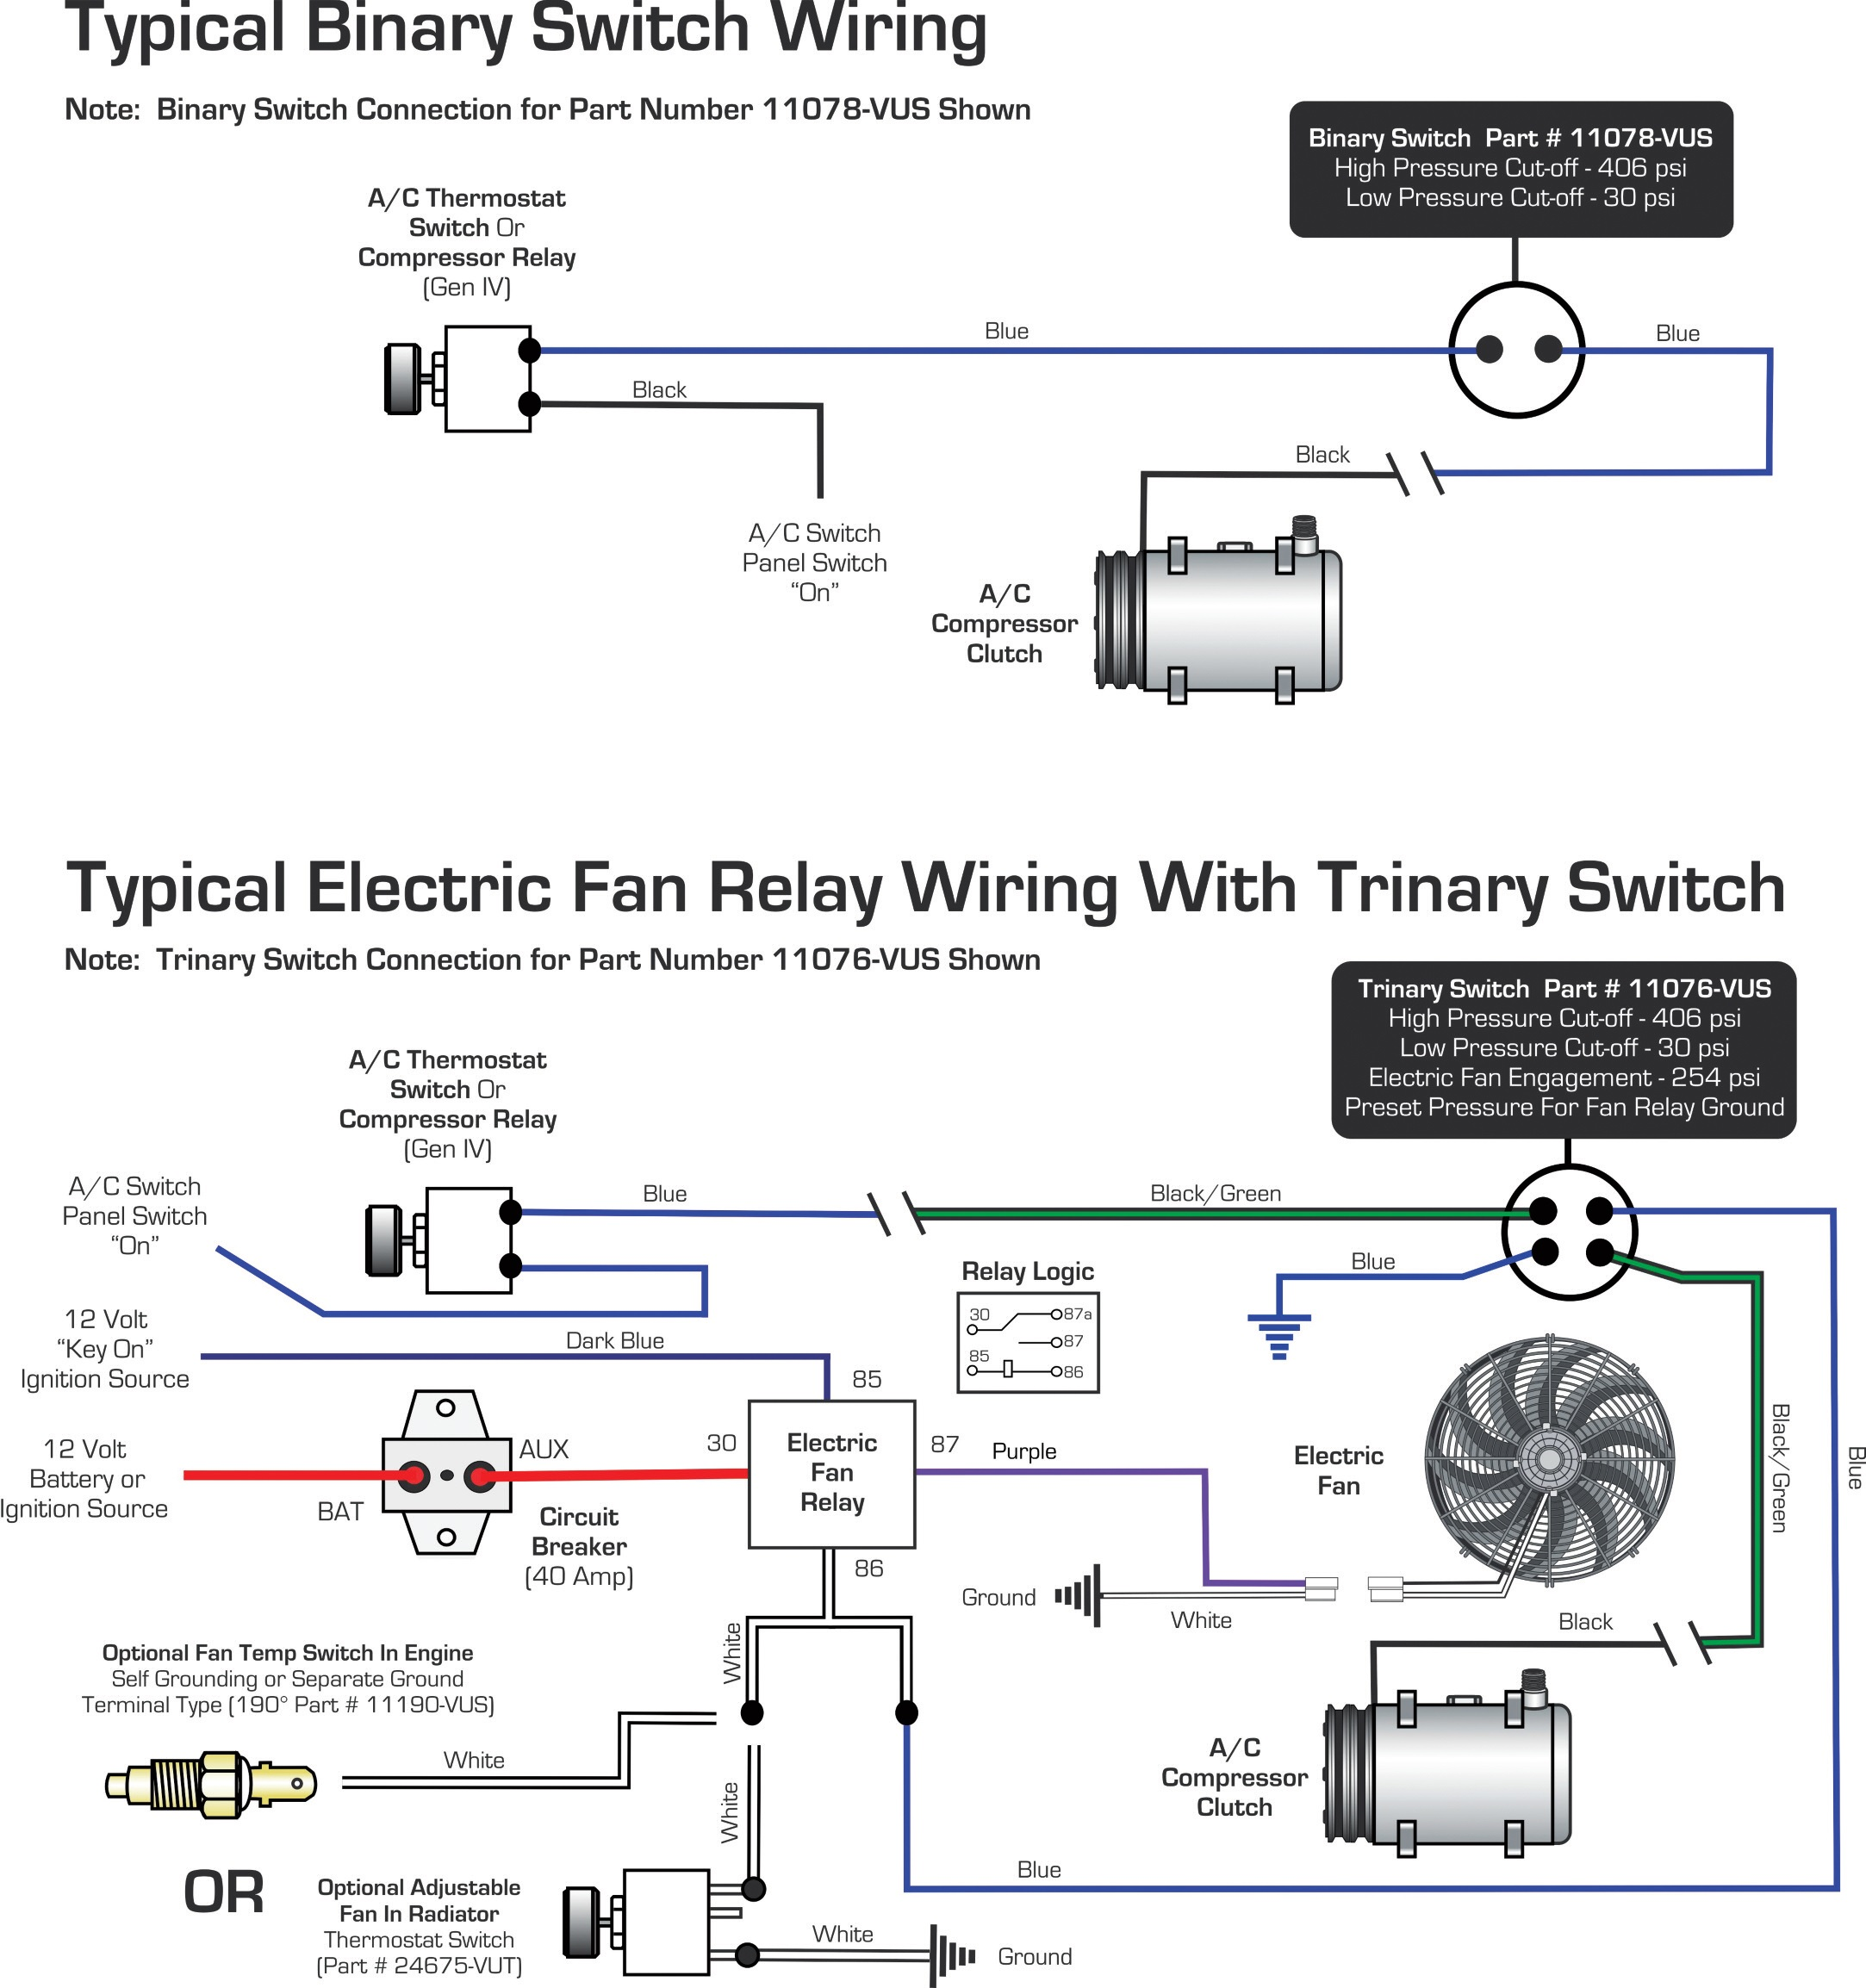 vintage air blog archive wiring diagrams binary switch trinary rh vintageair com Vintage Air Gen IV Install Vintage Air Gen IV Lincoln